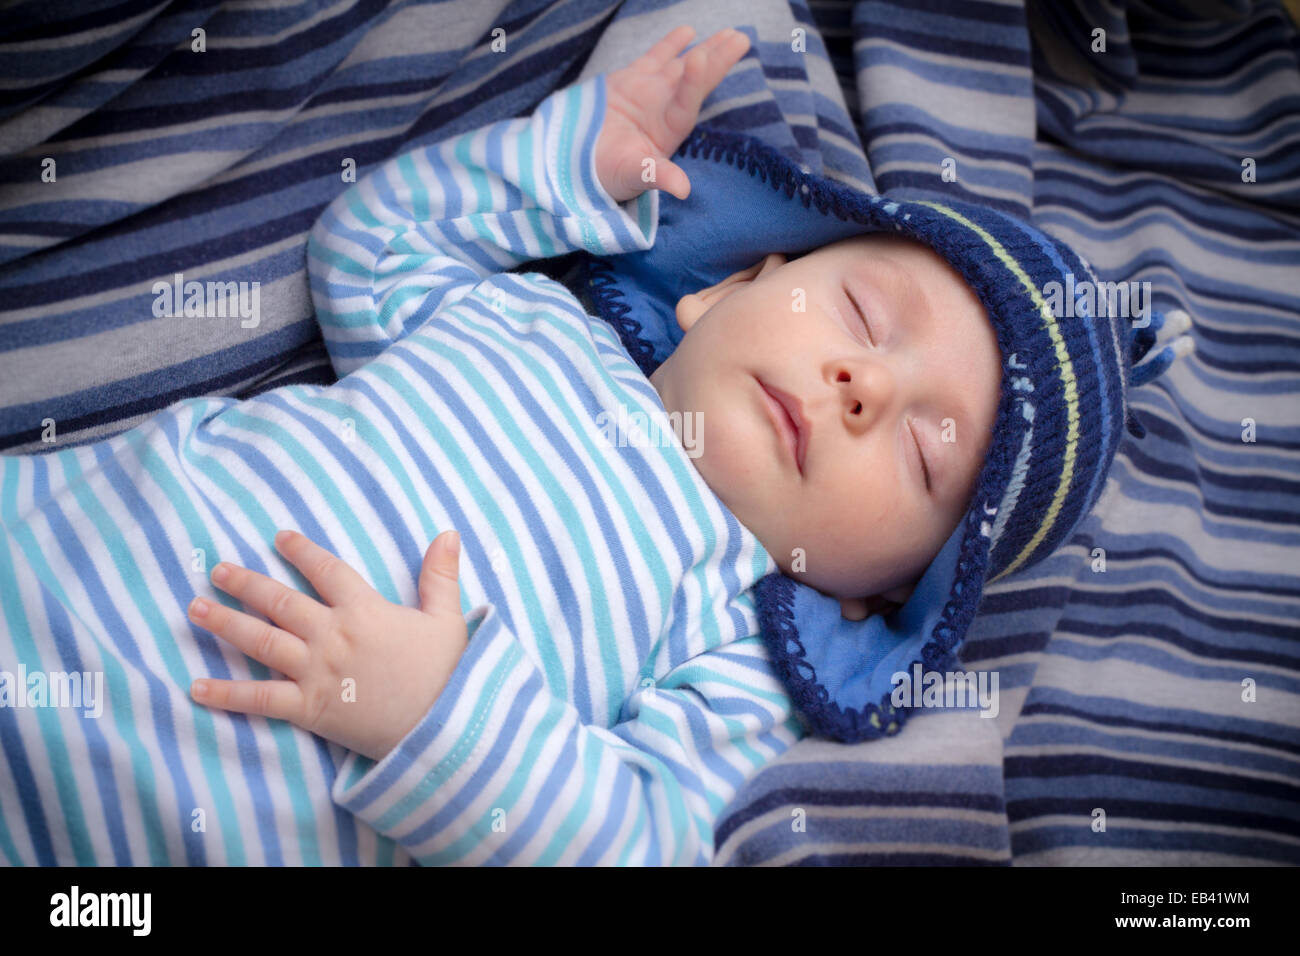 Newborn baby boy with striped hat and pajama sleeping on a blue blanket 718a4fa52405